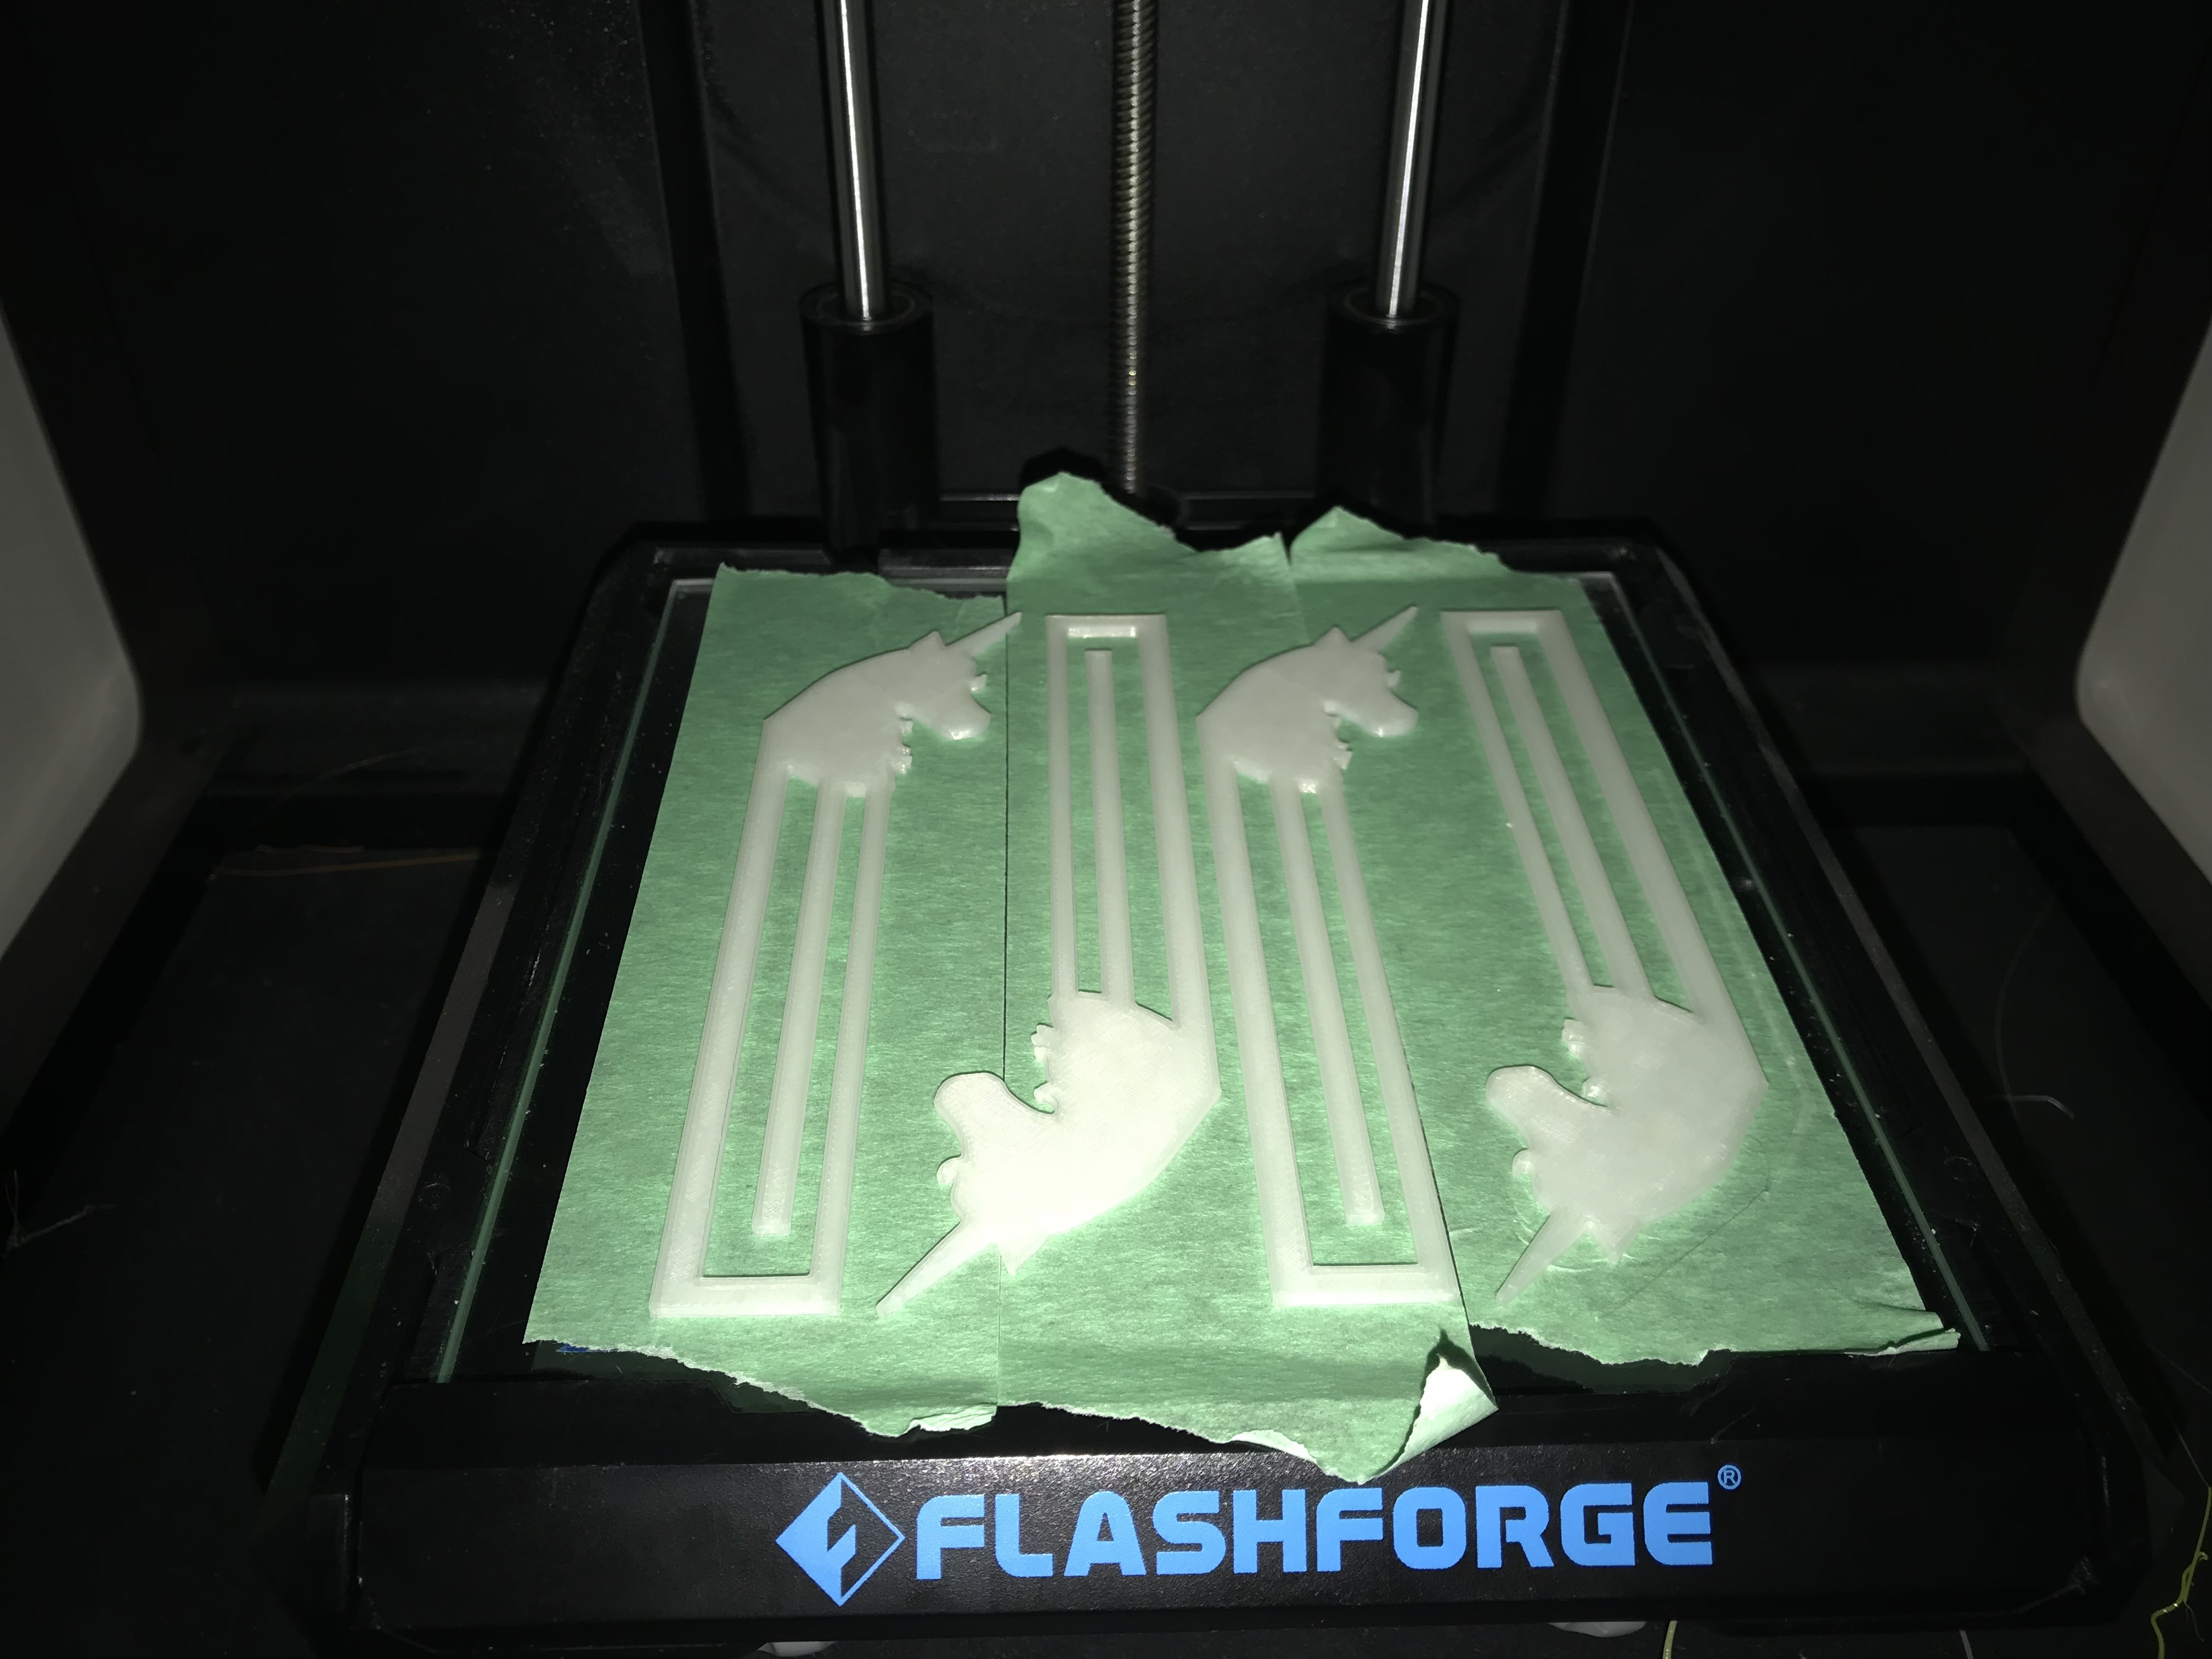 On the print bed with flash